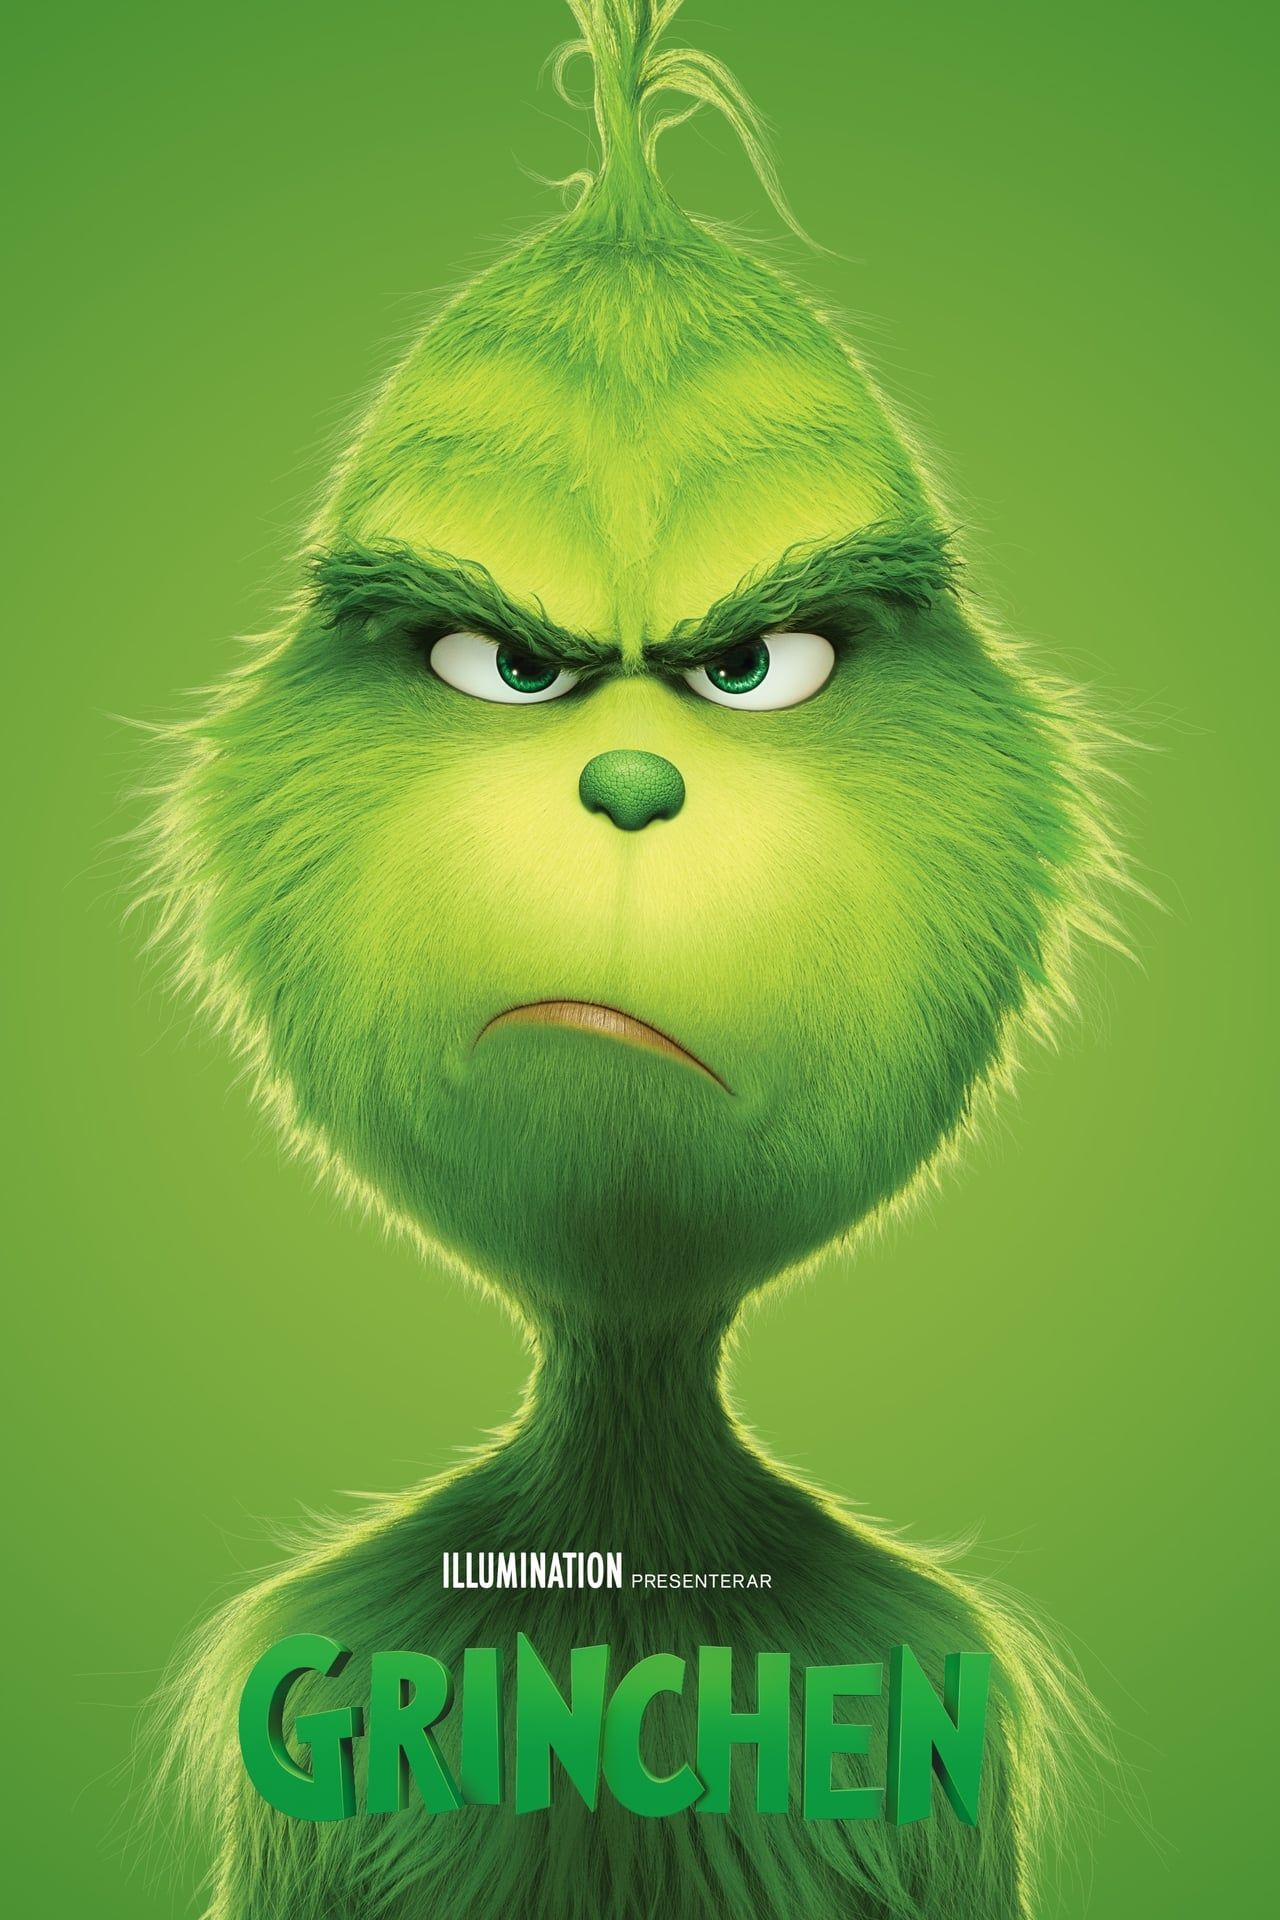 Le Grinch 2018 Streaming : grinch, streaming, REGARDER))~The, Grinch, [2018], STREAMING, GRATUIT, FILM'COMPLET, Français, Grinch,, Films, Complets,